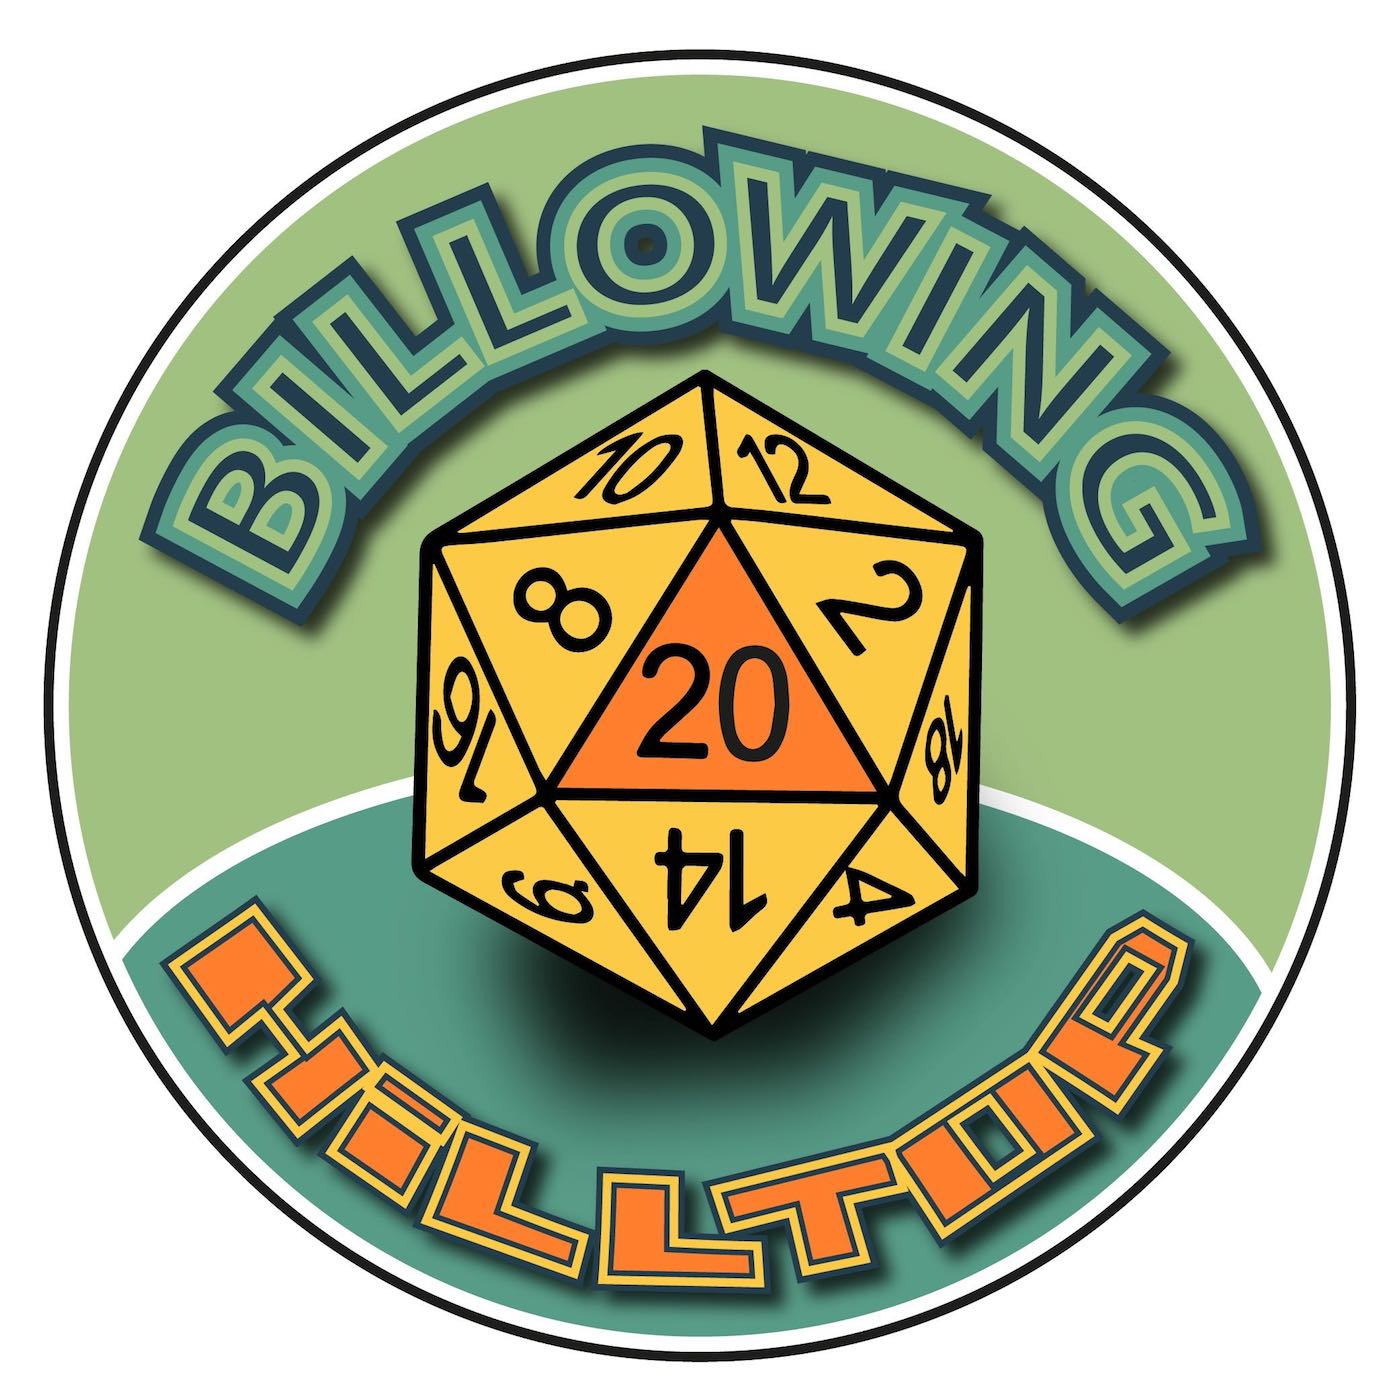 The Billowing Hilltop - A D&D Podcast